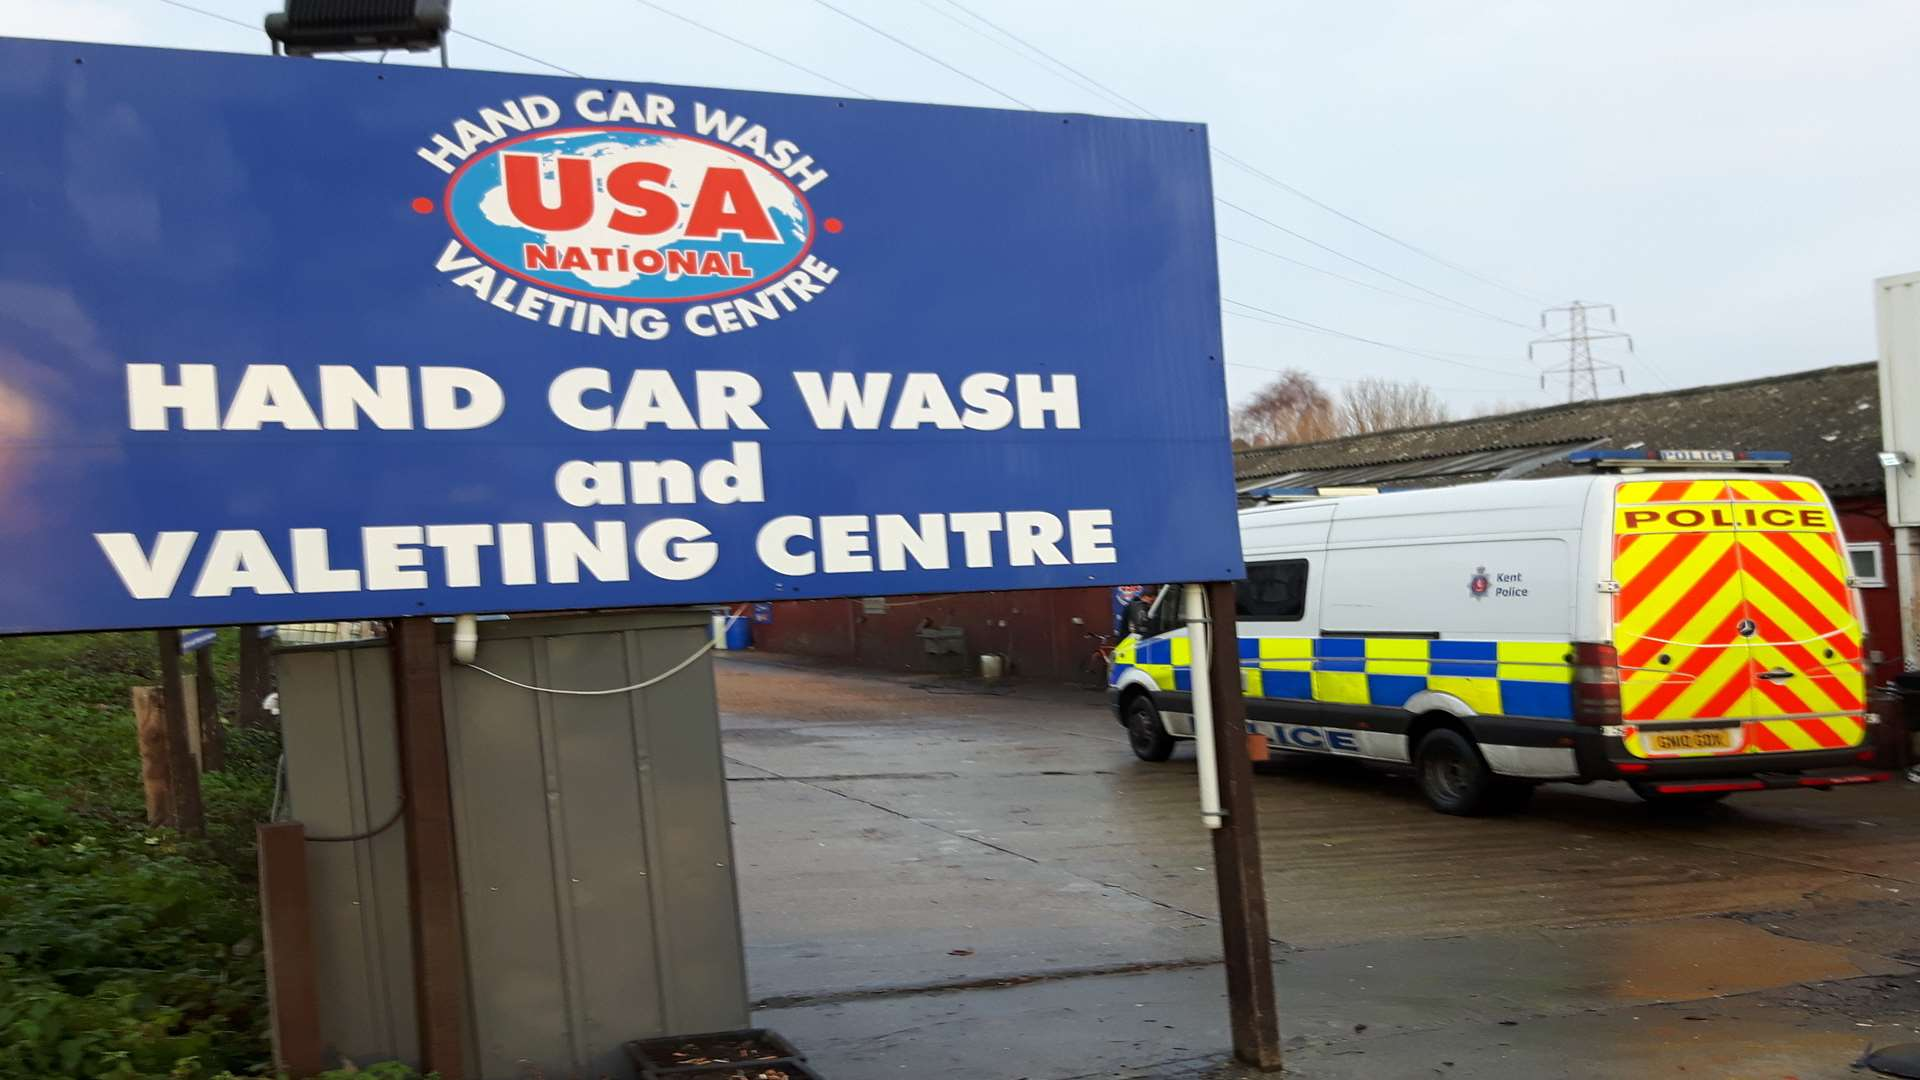 The USA Hand Car Wash in Broad Oak Road